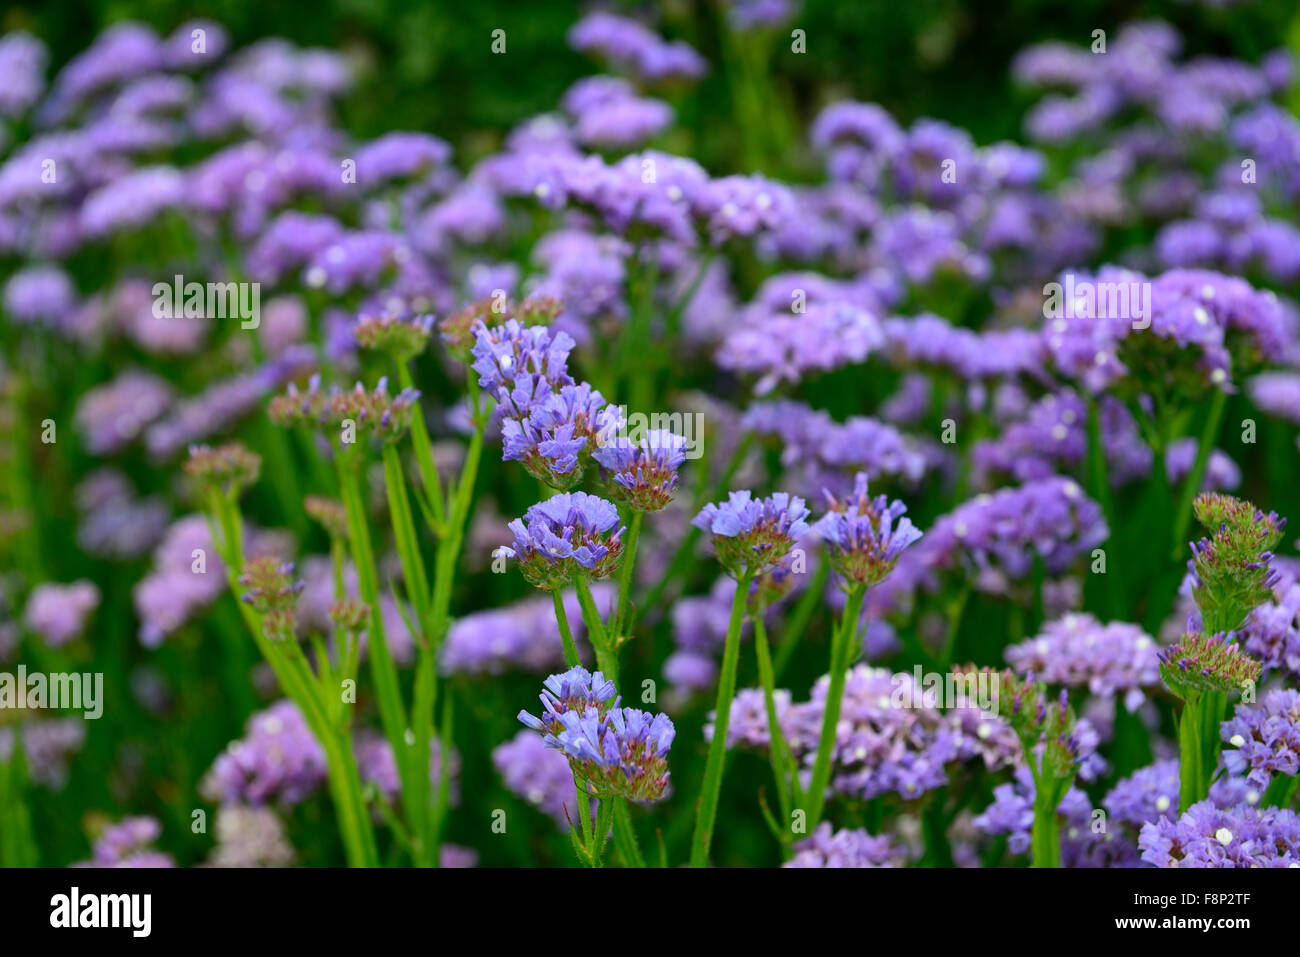 Limonium sinuatum sky blue statice annual annuals flowers flowering limonium sinuatum sky blue statice annual annuals flowers flowering flower bed display mass massed profusion profuse rm floral izmirmasajfo